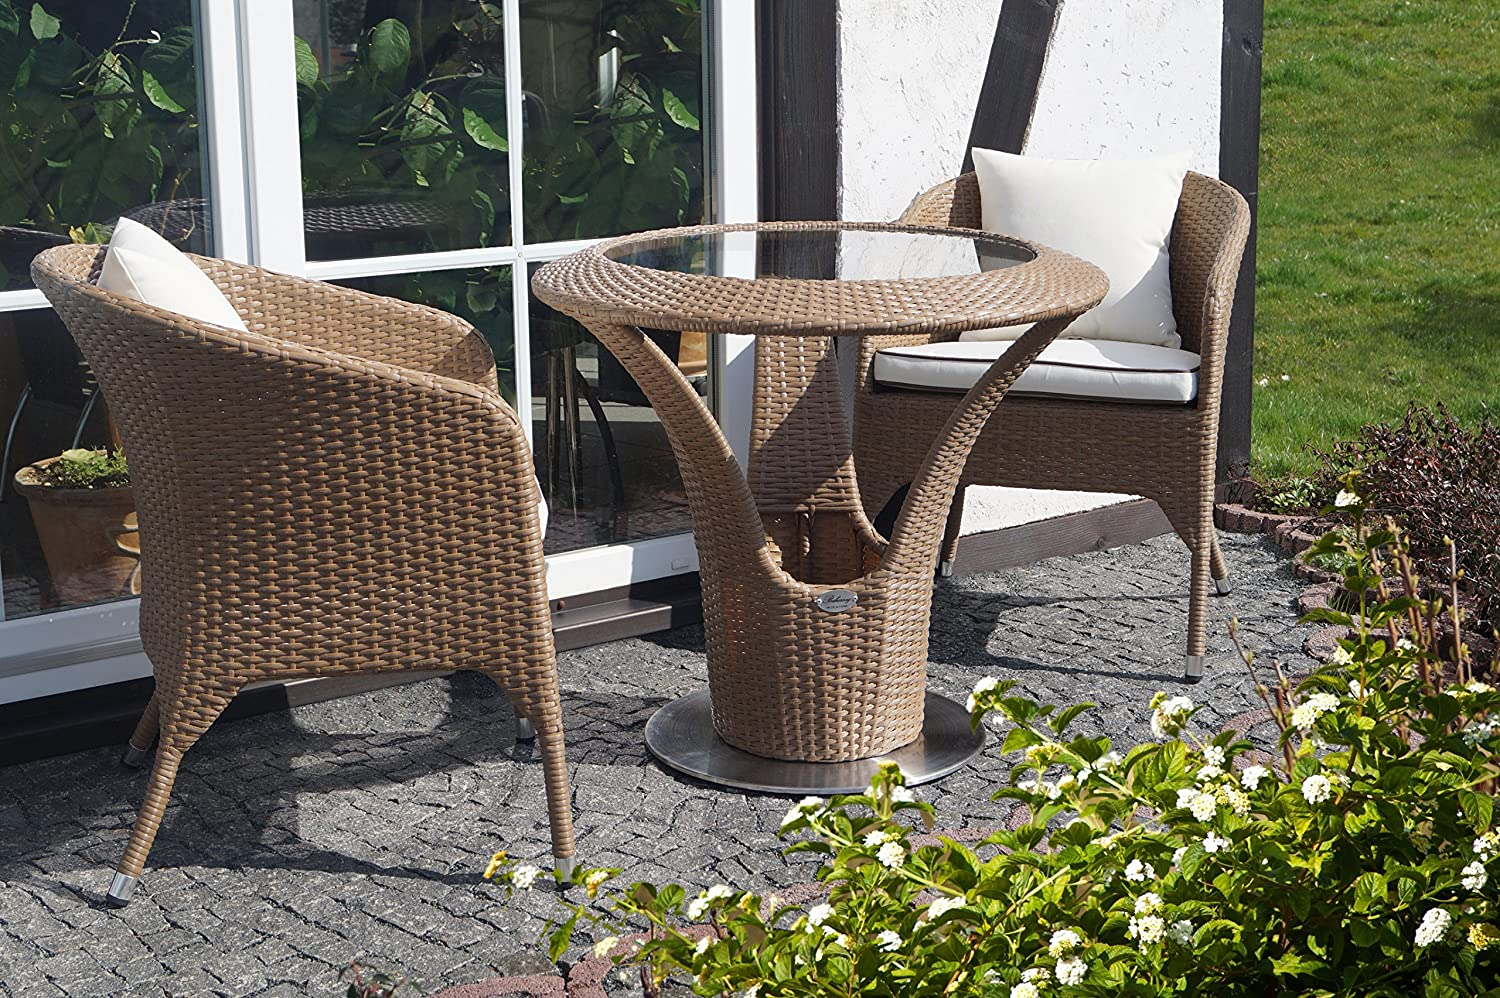 rattan gartenm bel garten balkon bistro set 2 personen runder tisch mit 2x sessel und. Black Bedroom Furniture Sets. Home Design Ideas